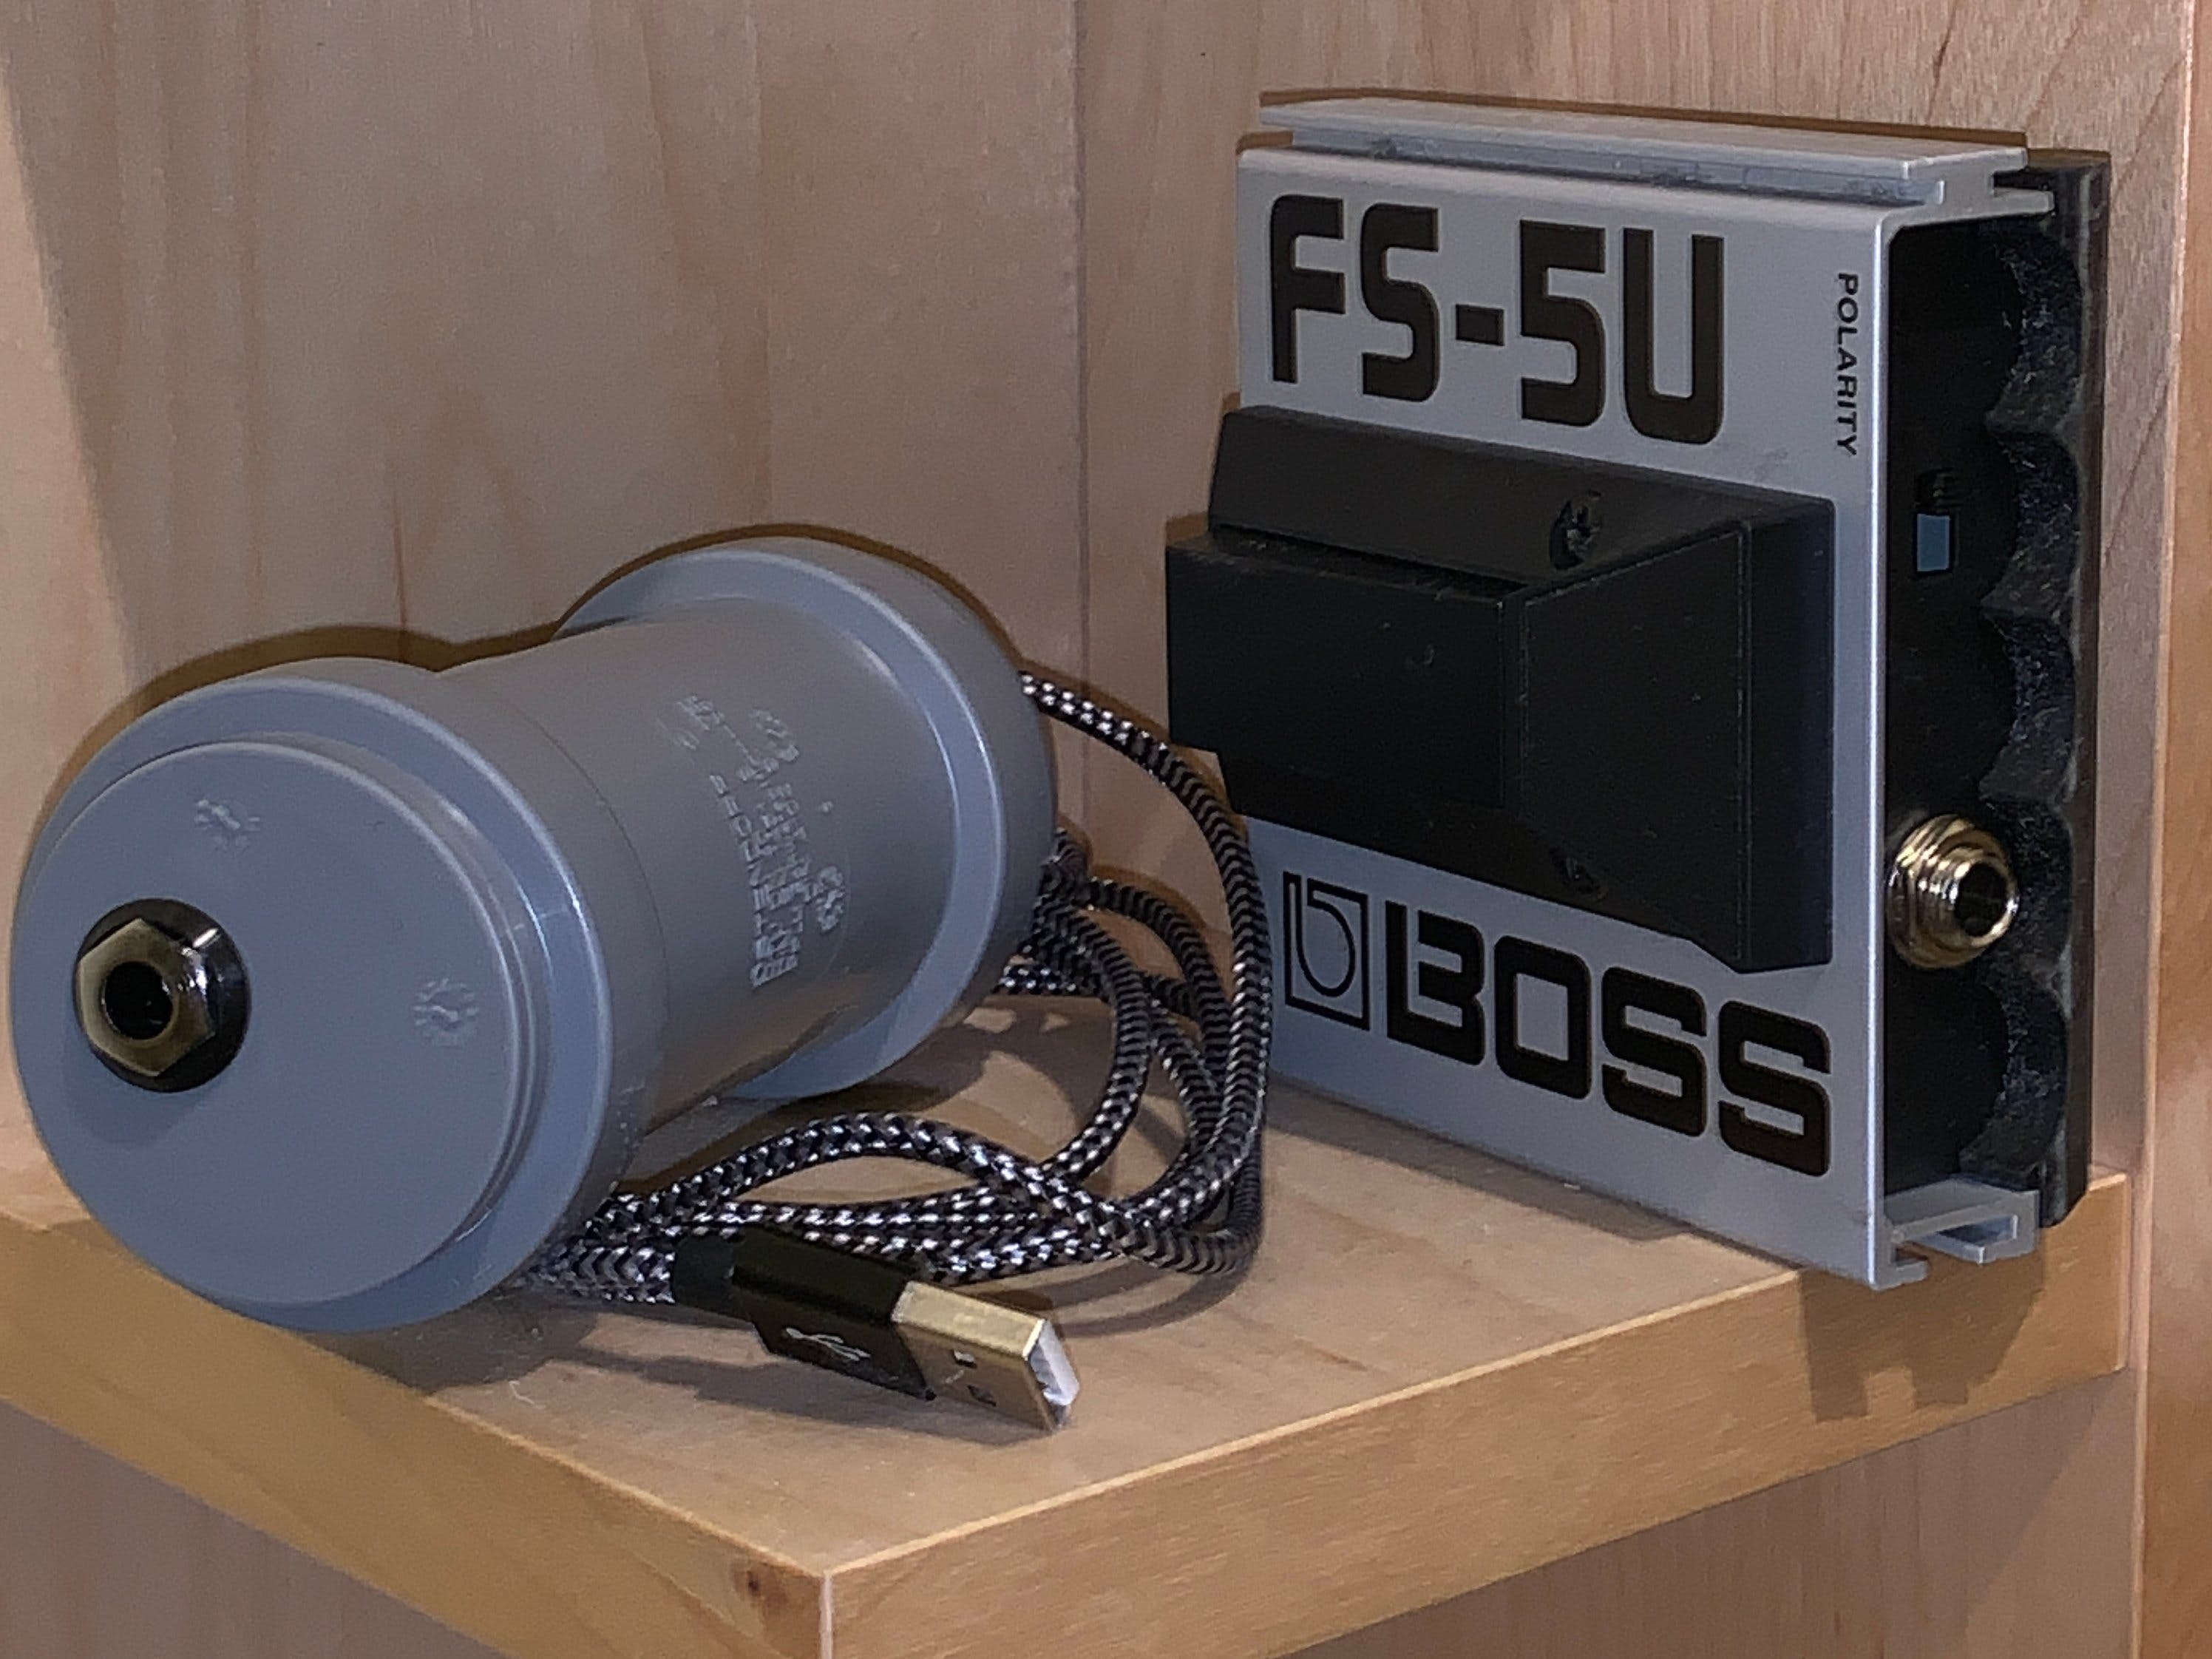 USB Footswitch from Boss FS-5U, 6U and Similar